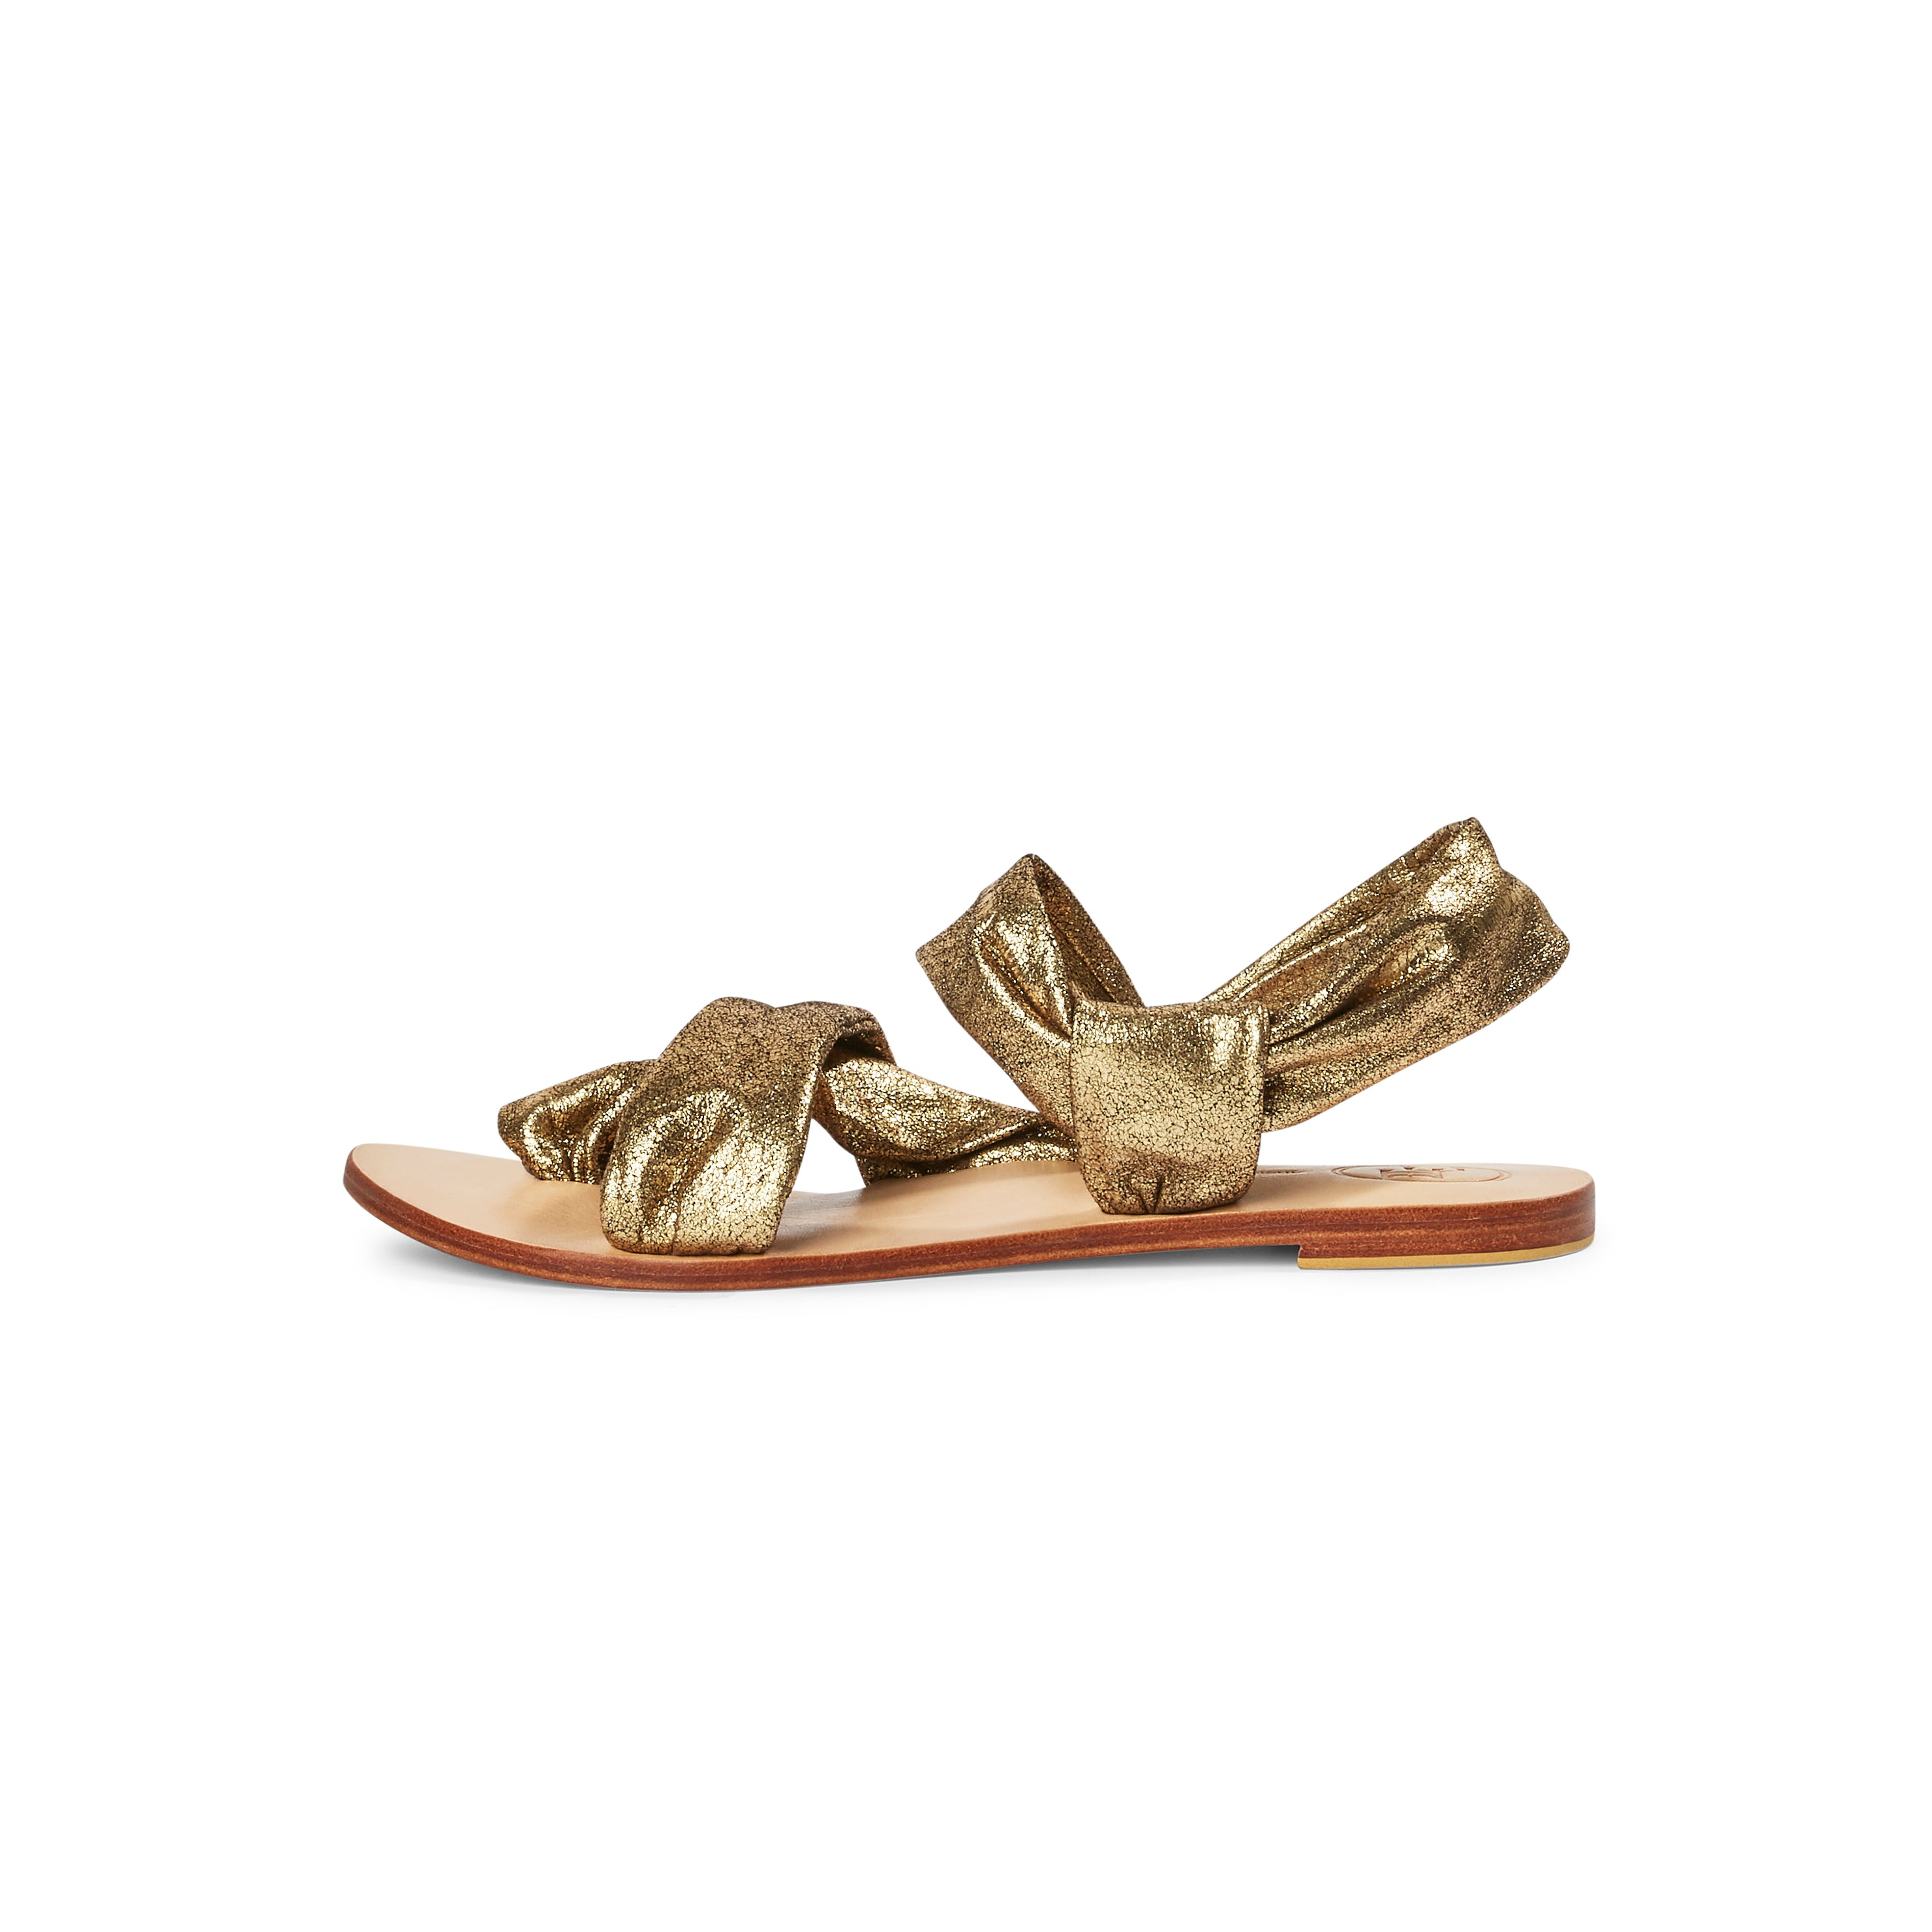 The Rouched Sandal - Distressed Gold